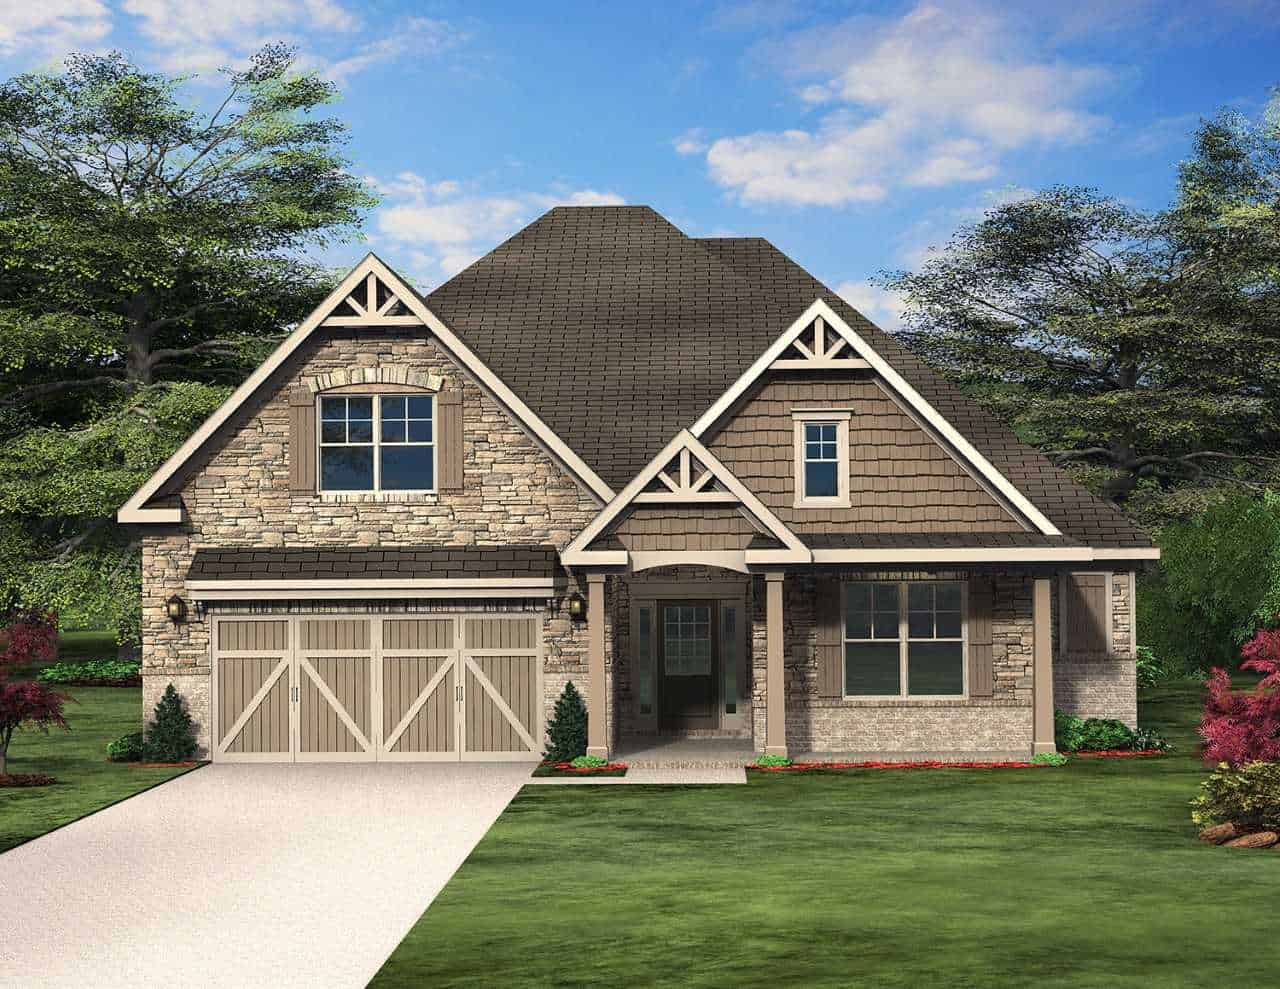 Paran Homes Hits the Halfway Mark at The Woods of Midvale – Paran Homes Floor Plans